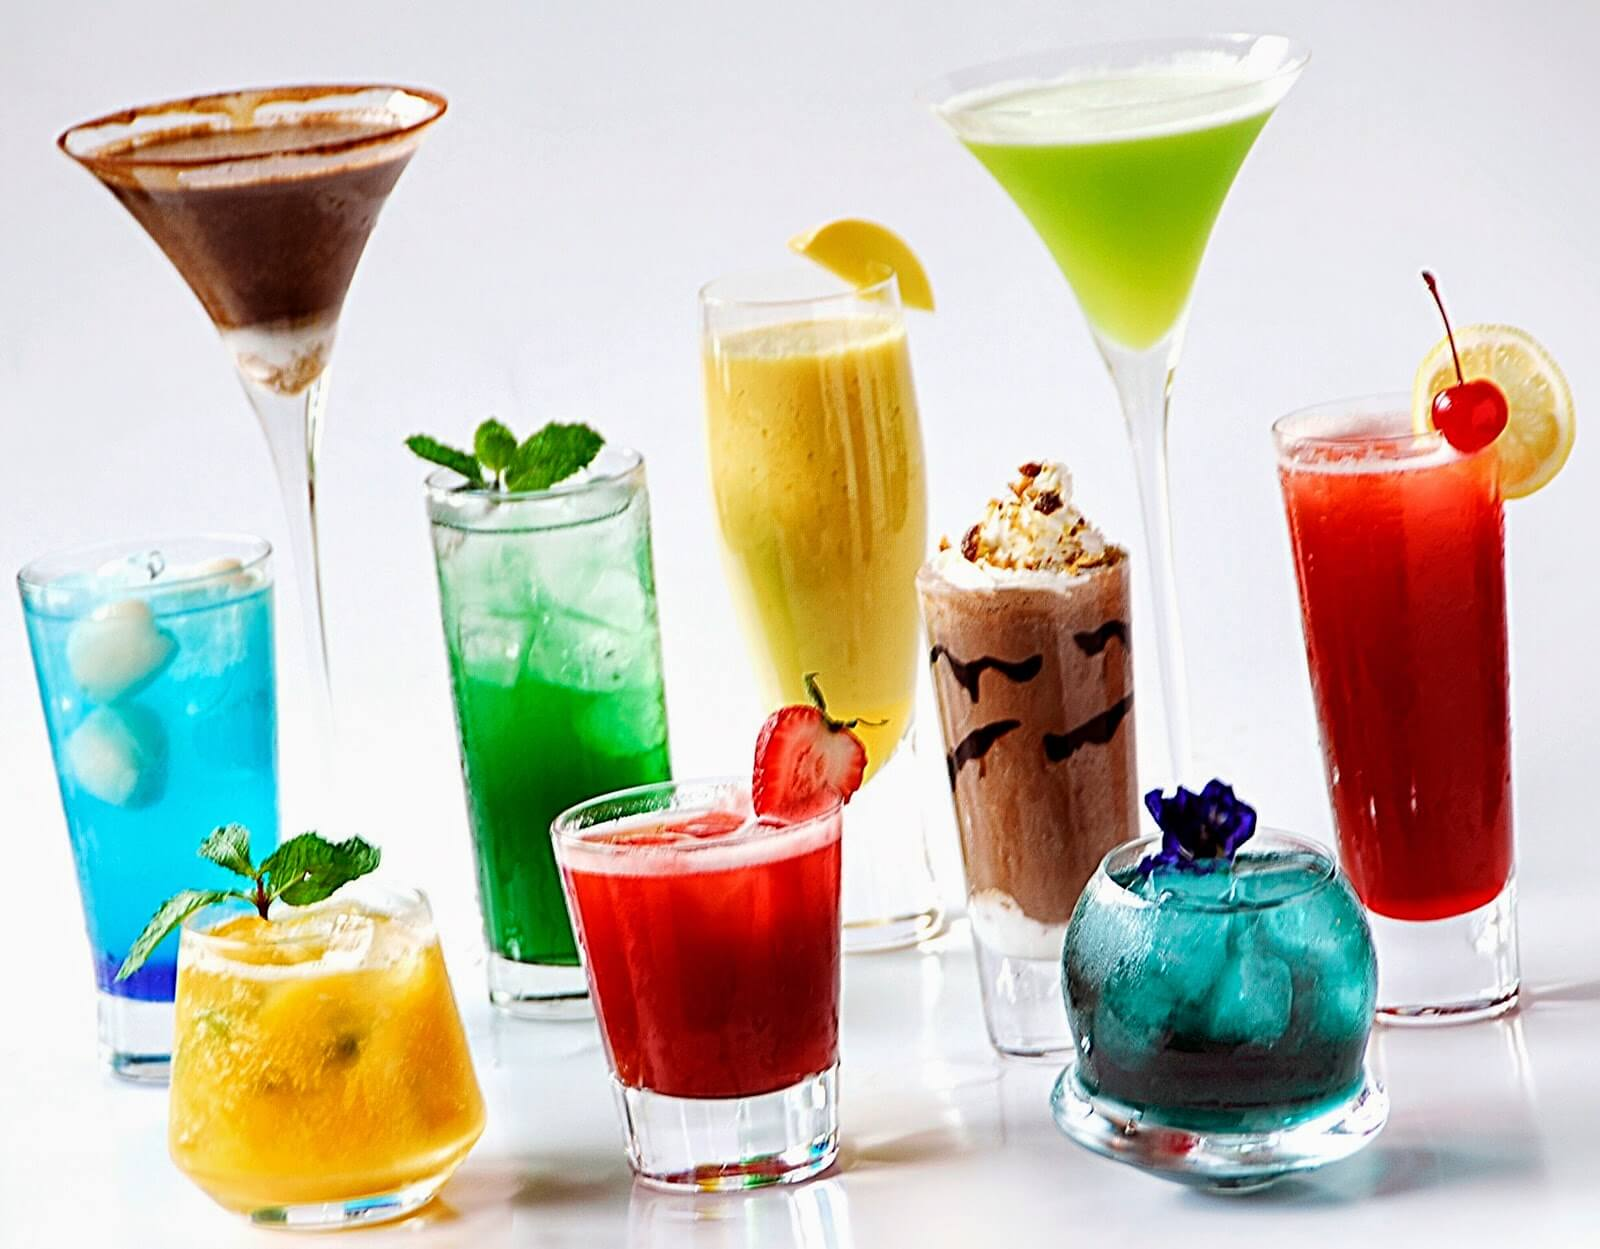 There are so many mocktails to have! Try them all!